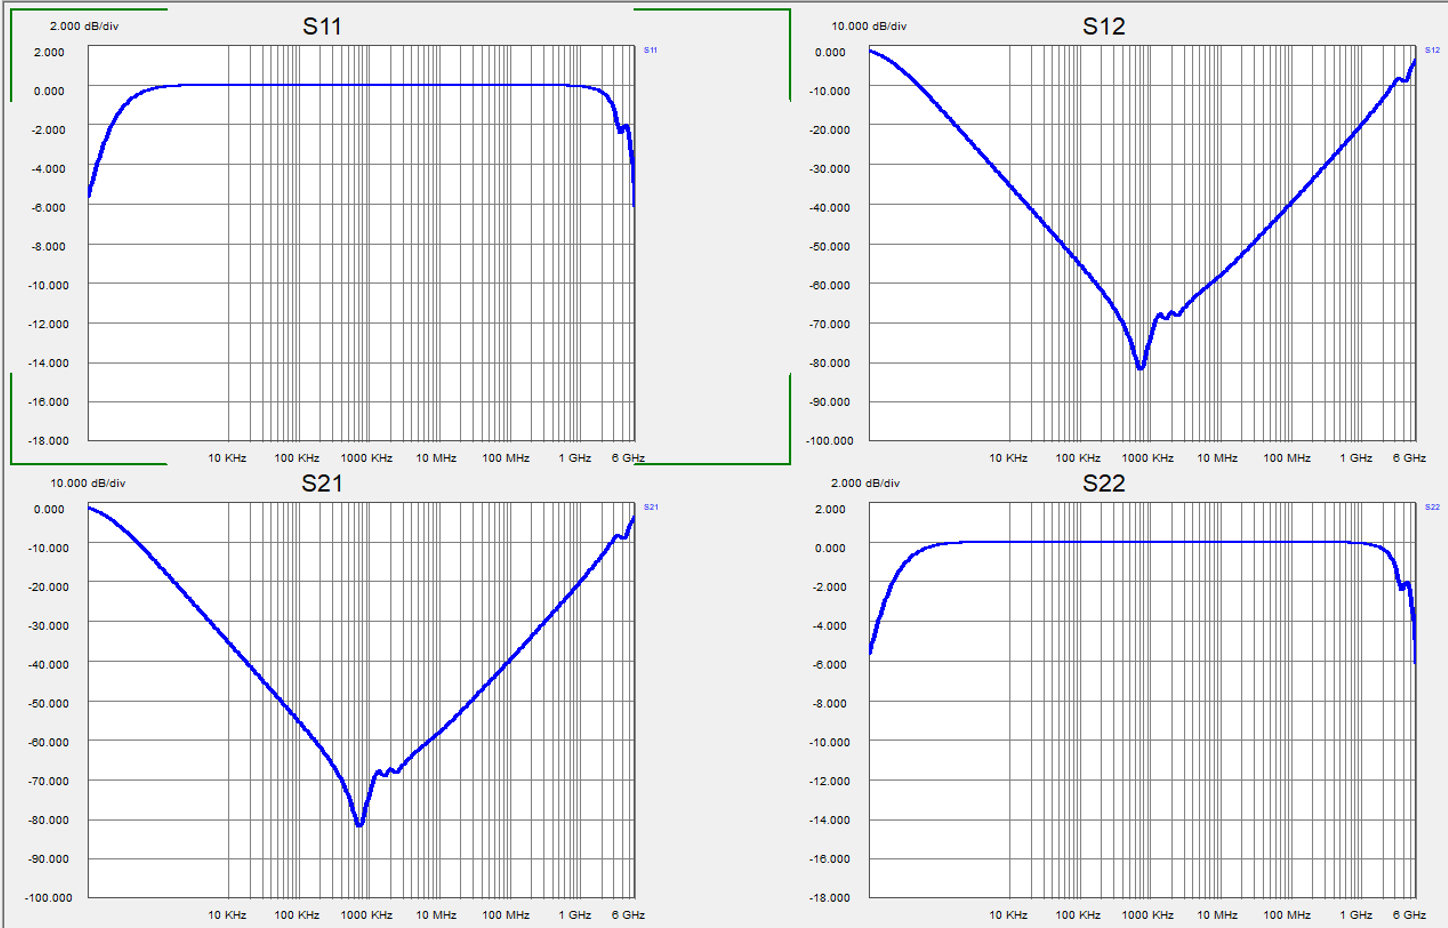 Accurate S-parameter model of the GRM32ER60J476 capacitor in Shunt mode shows identical responses for S11 and S12.